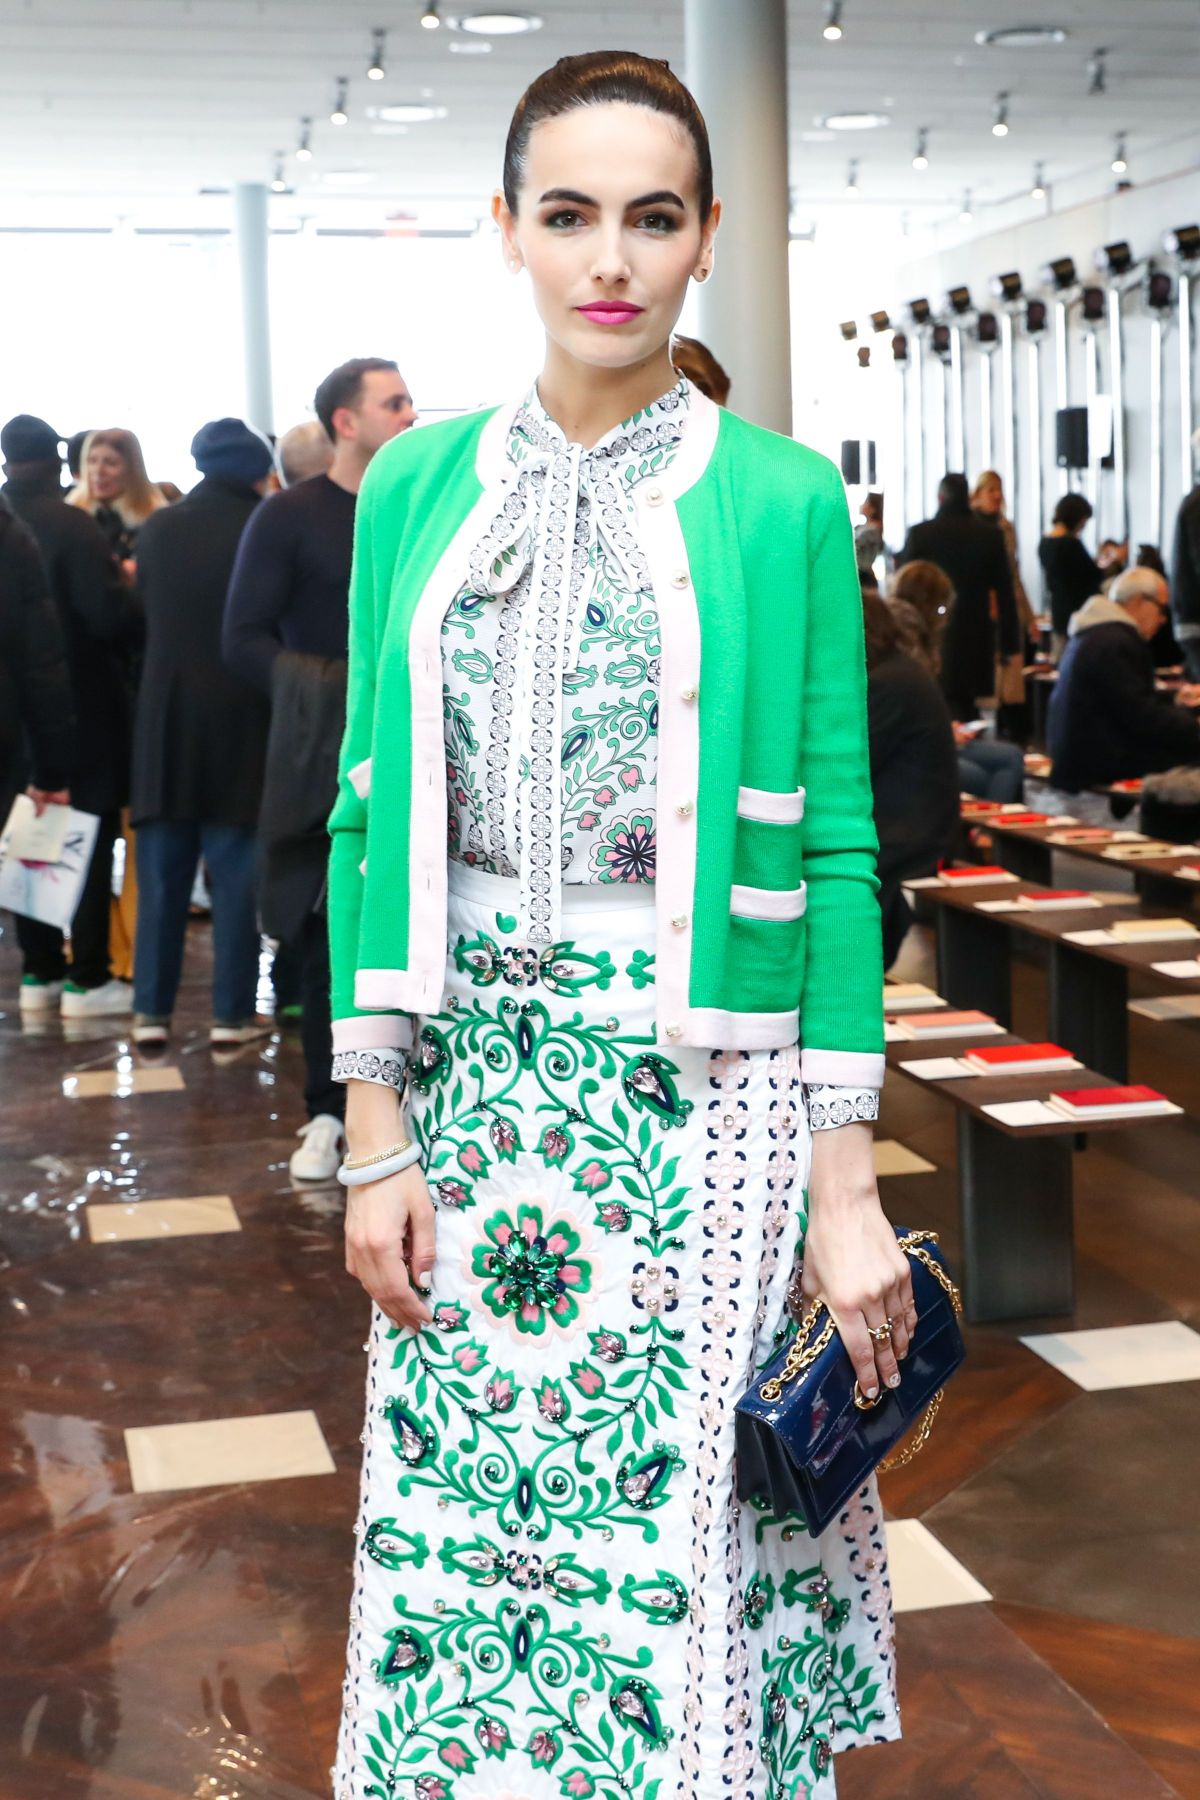 CAMILLA BELLE at Tory Burch Fashion Show in New York 02/14/2017